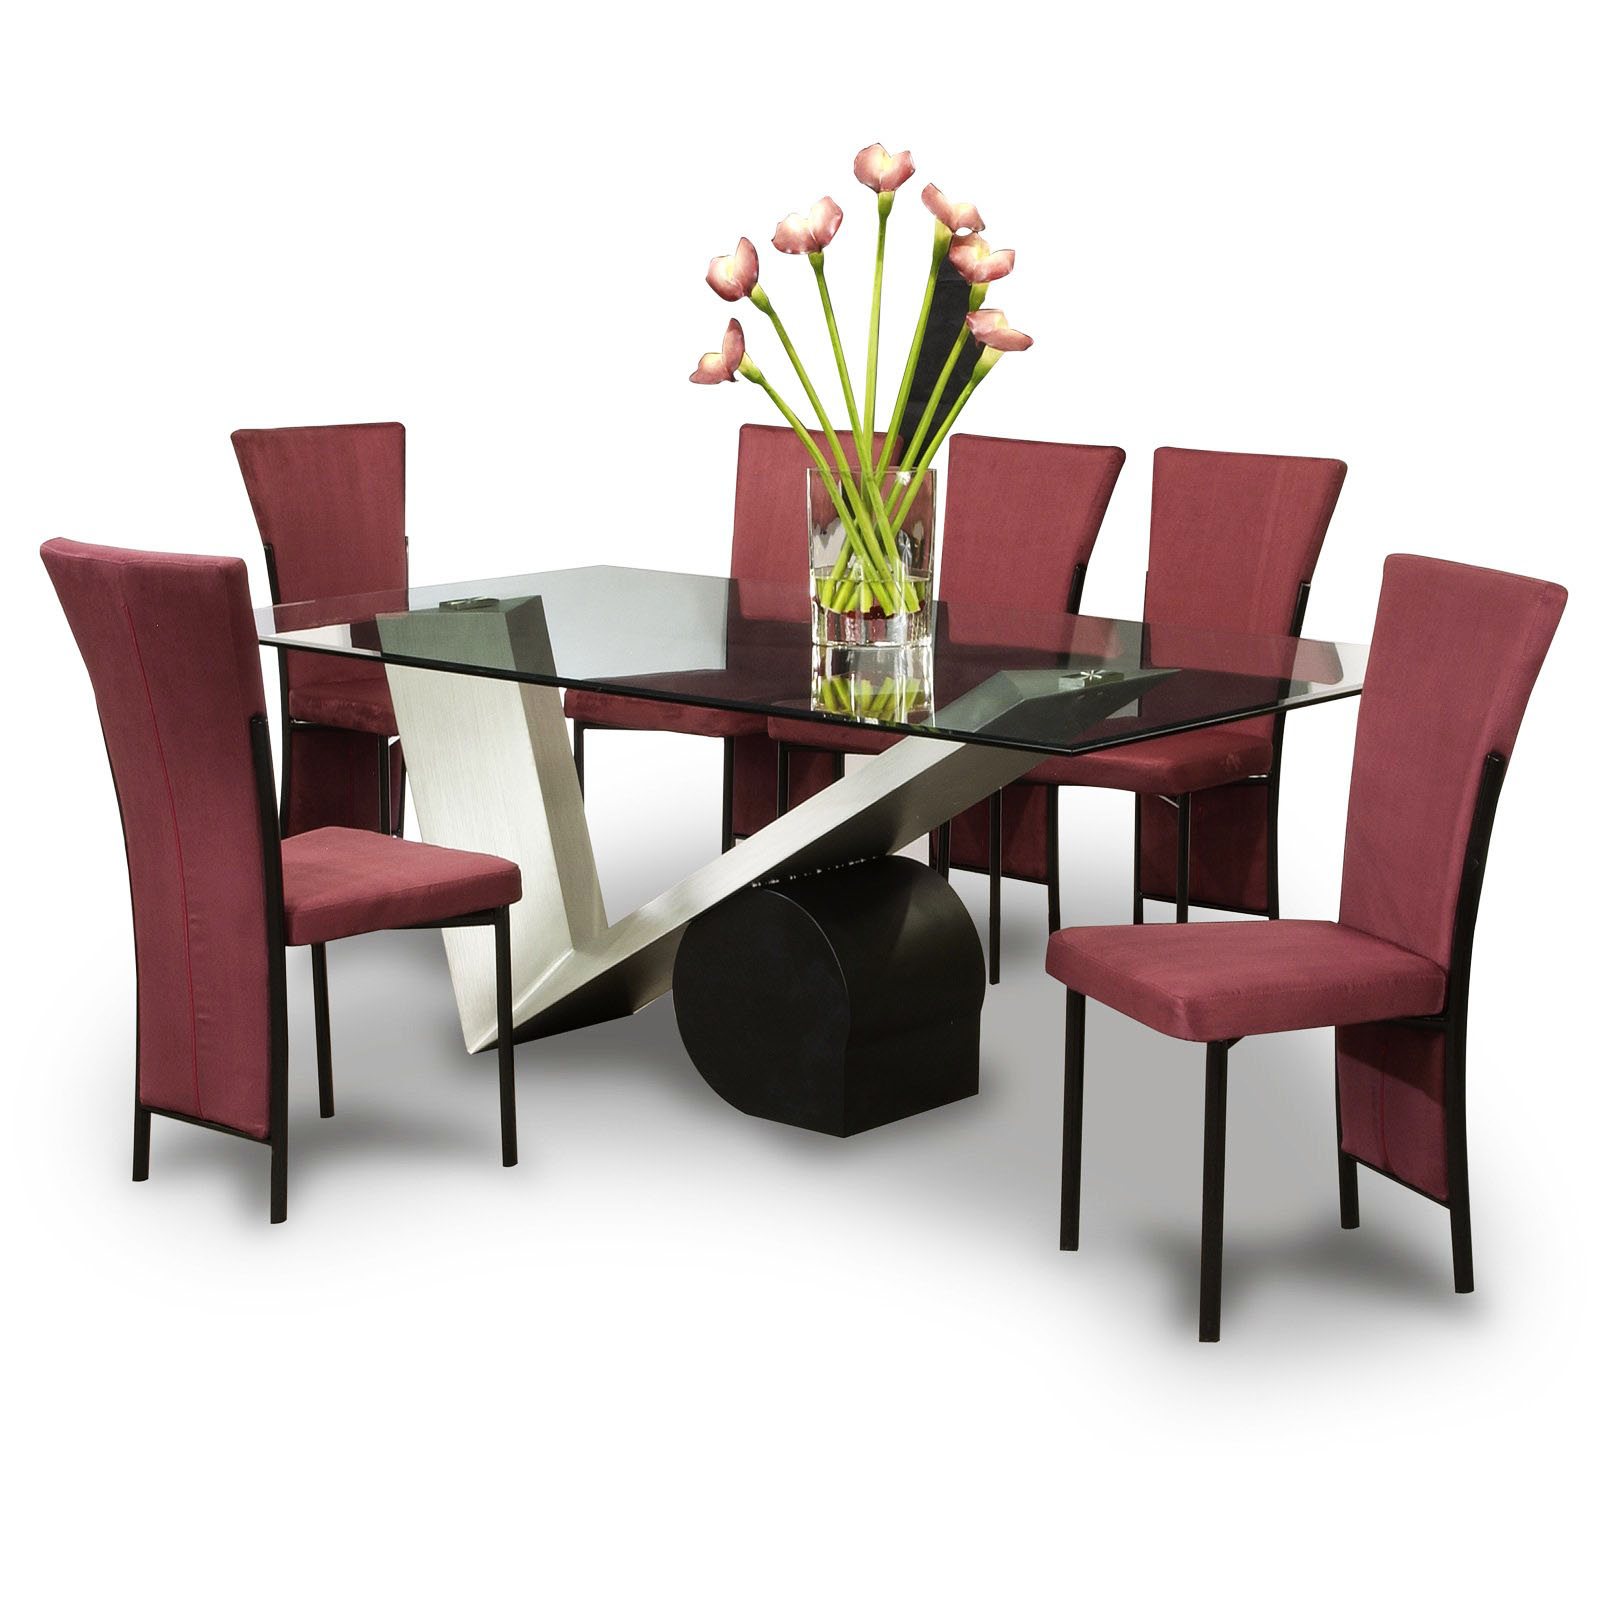 Buy Modern Look Dining Table With 6 Chairs In Mumbai